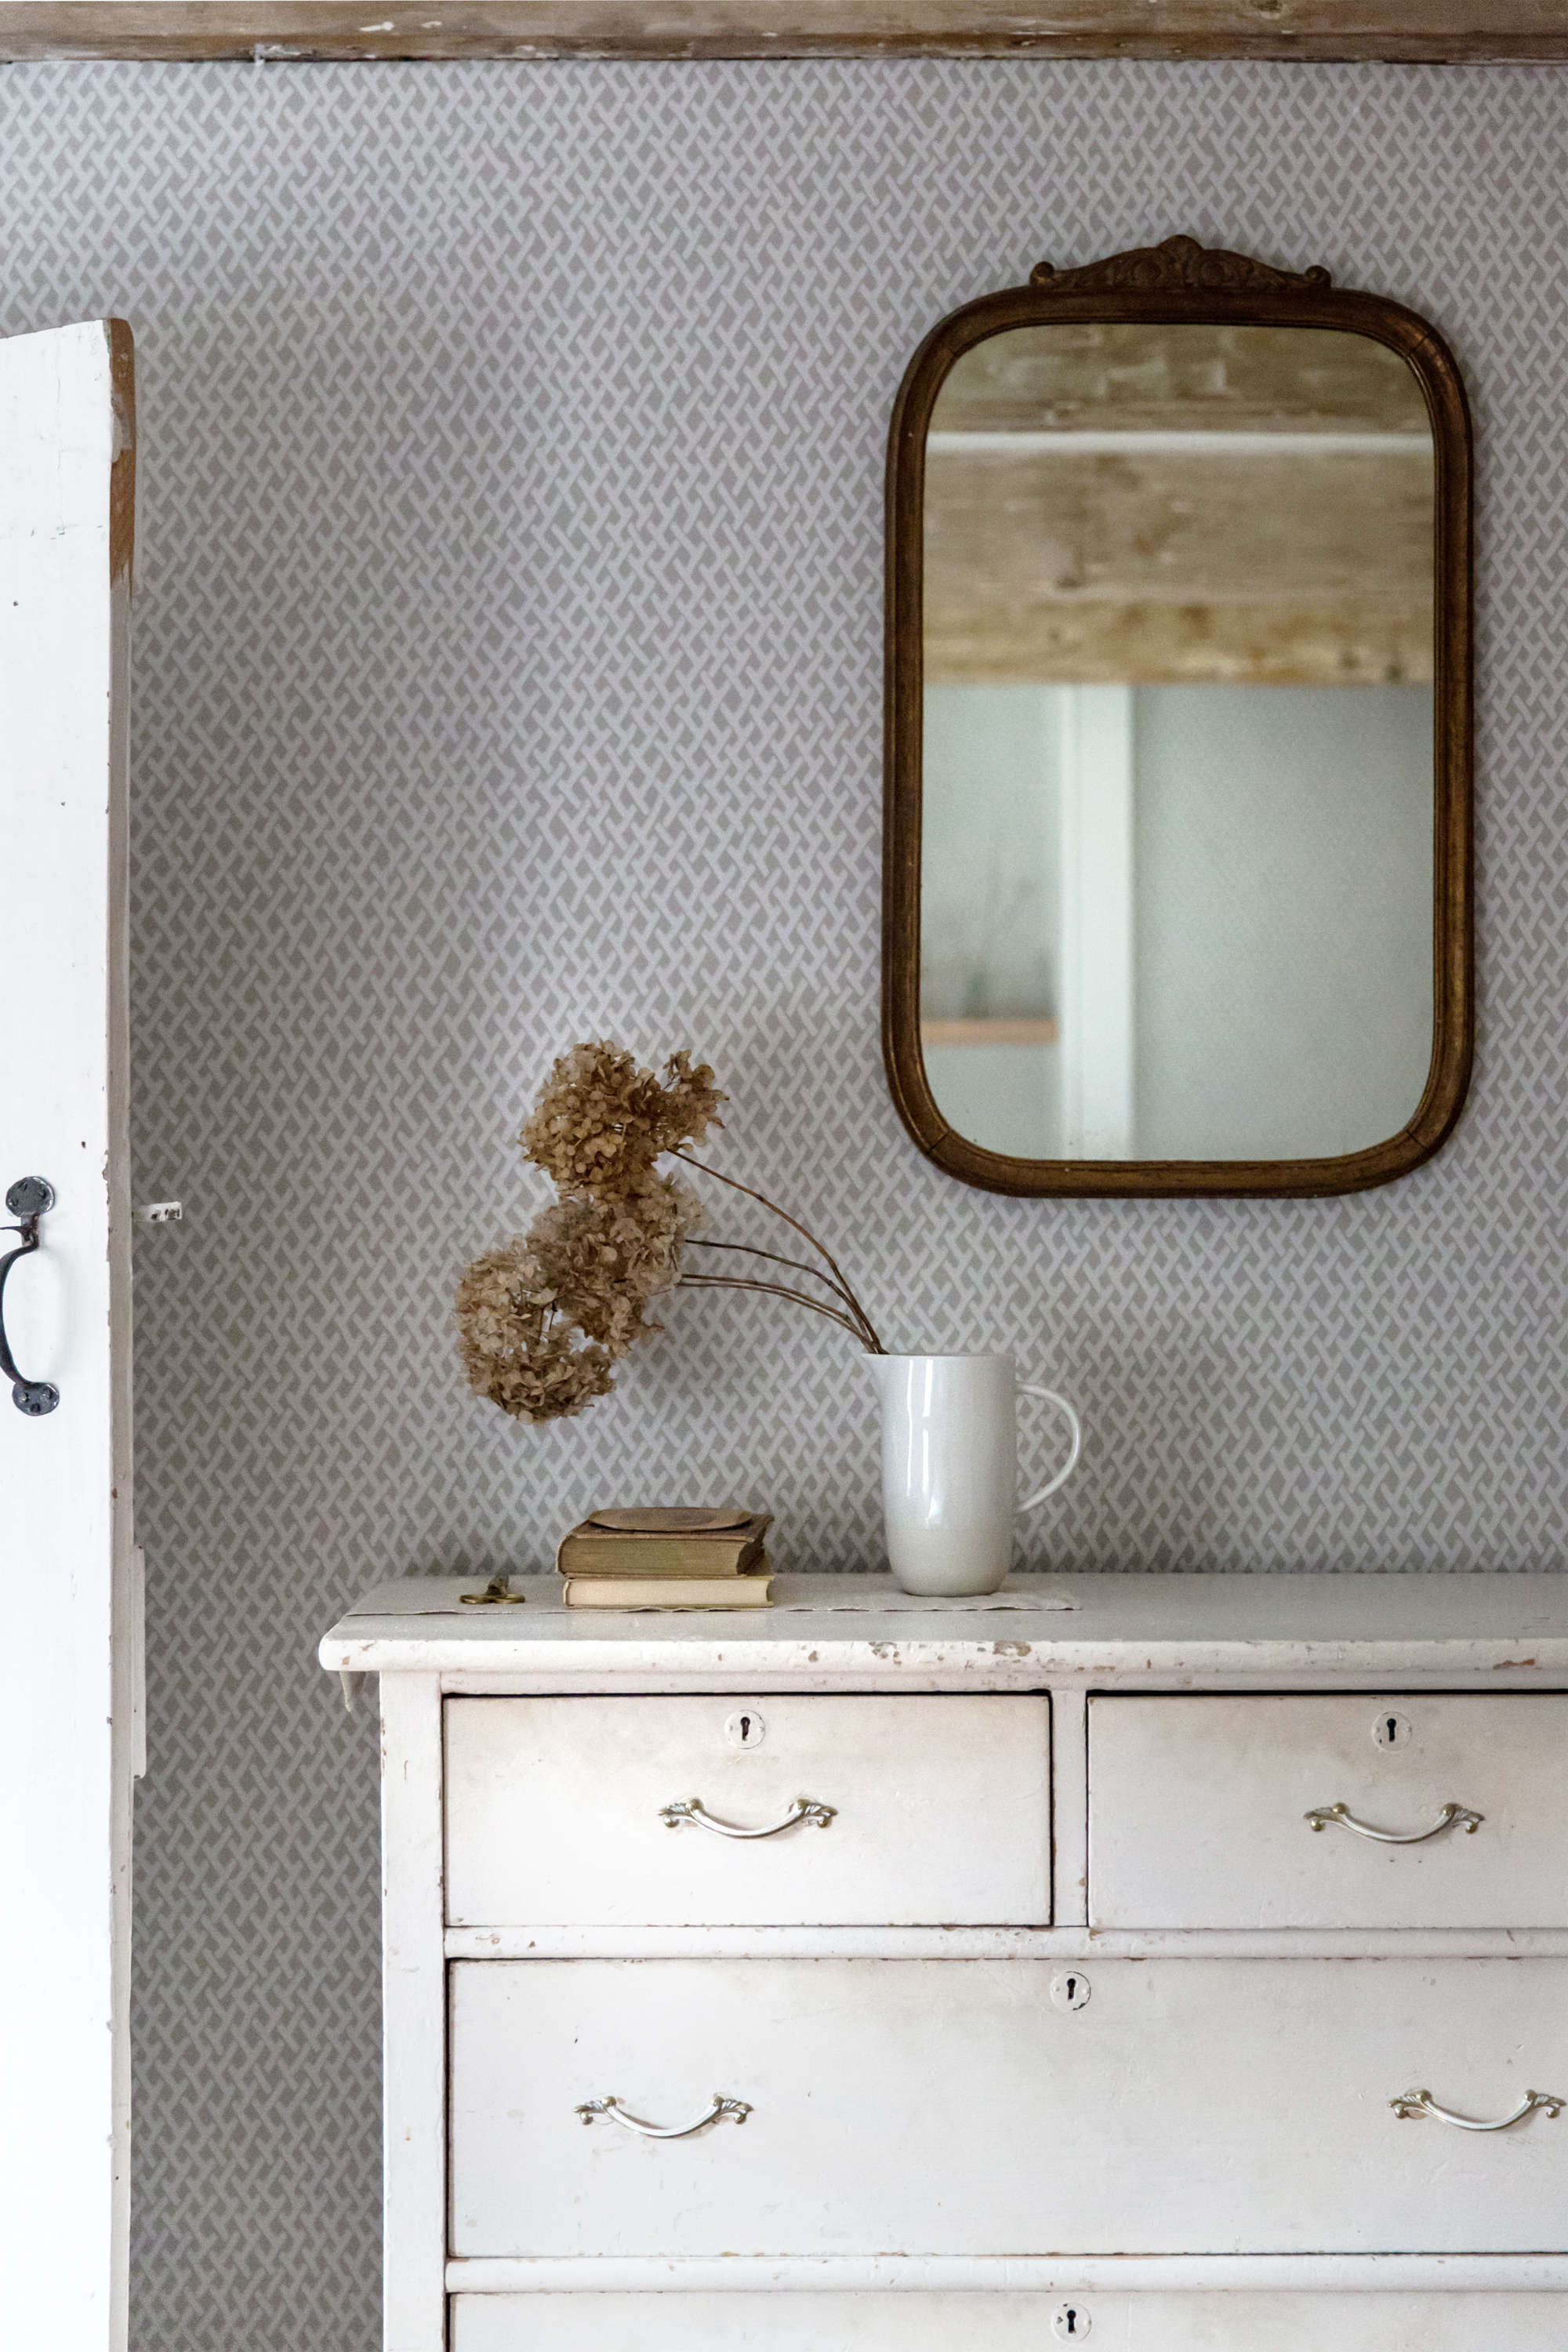 jerset ice cream co old chatham house, remodelista, guest bdrm mirror 26